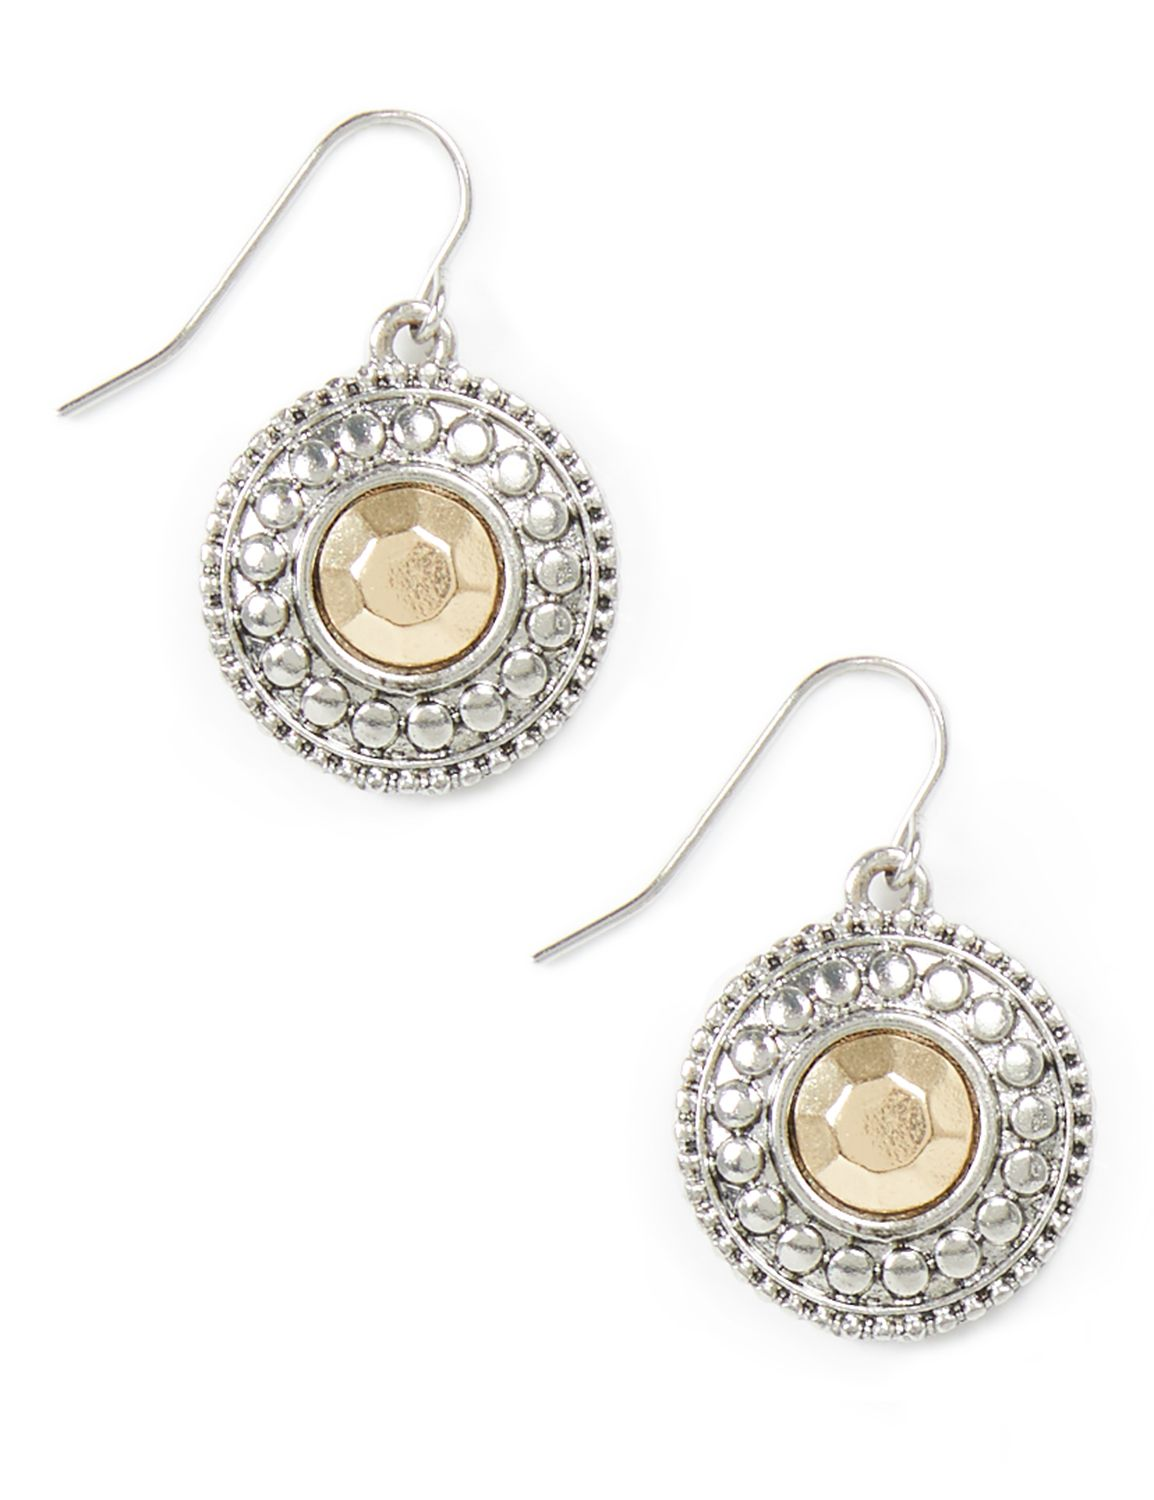 Silver Serenade Earrings CB 2tone filagree drop disc PE KT07 MP-300099919